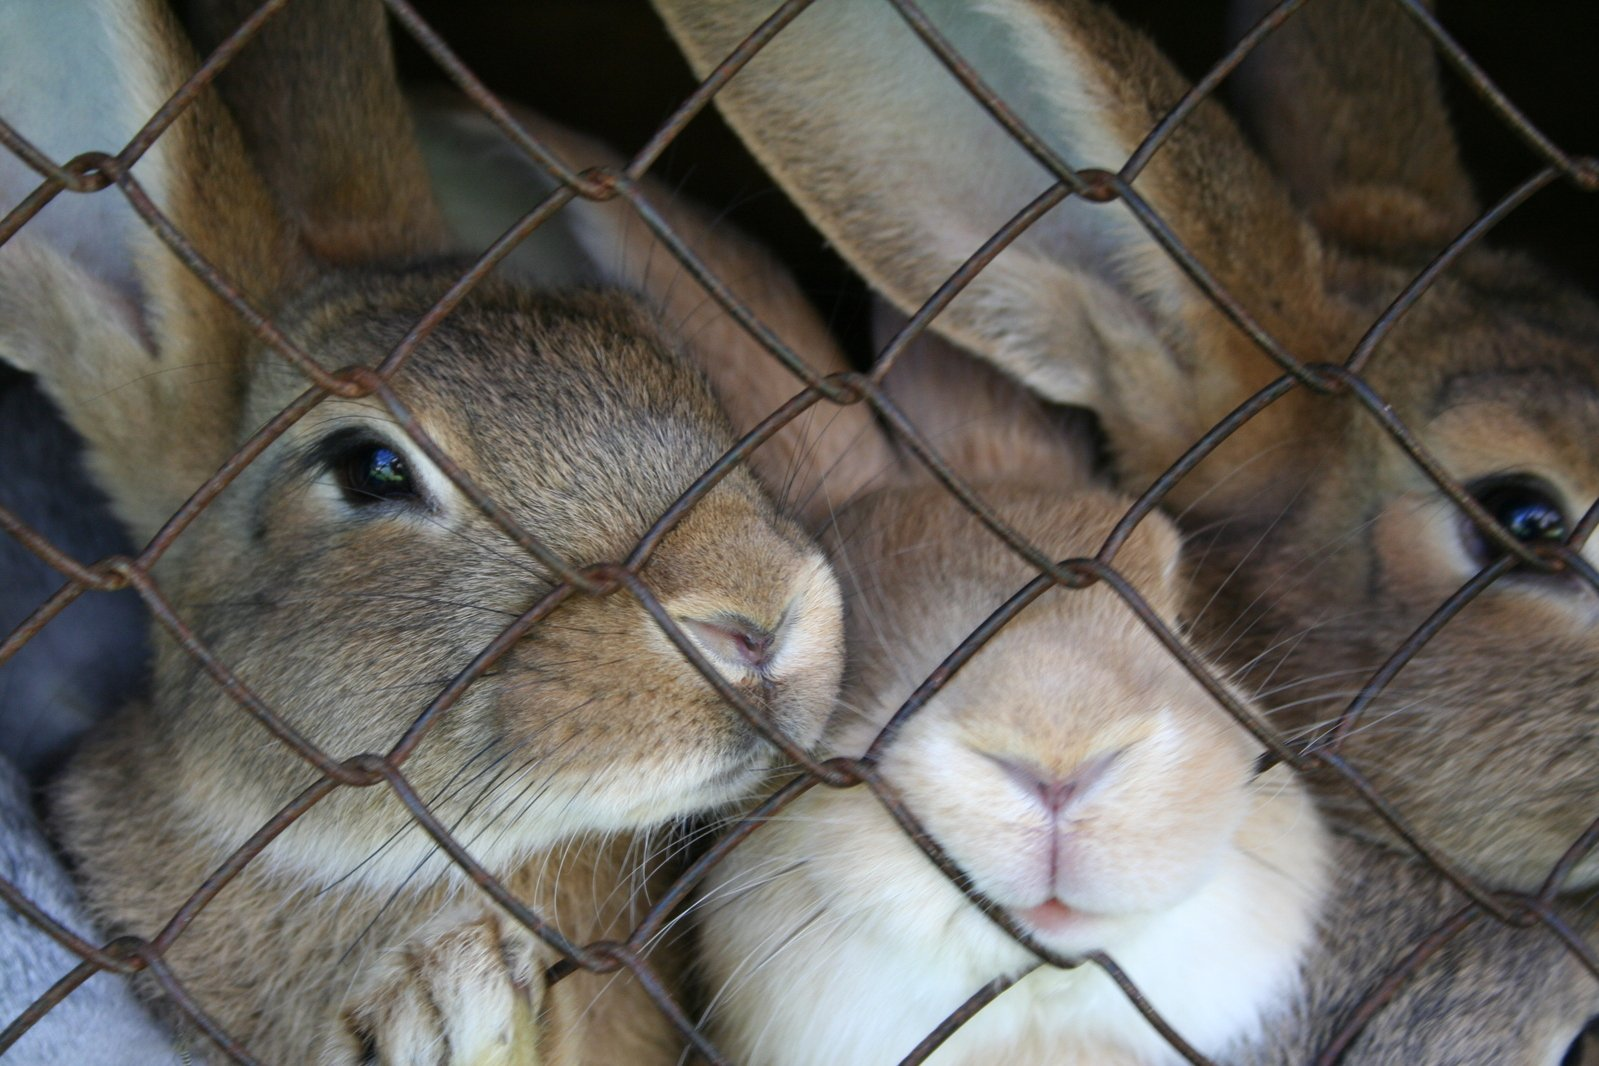 3 rabbits caged